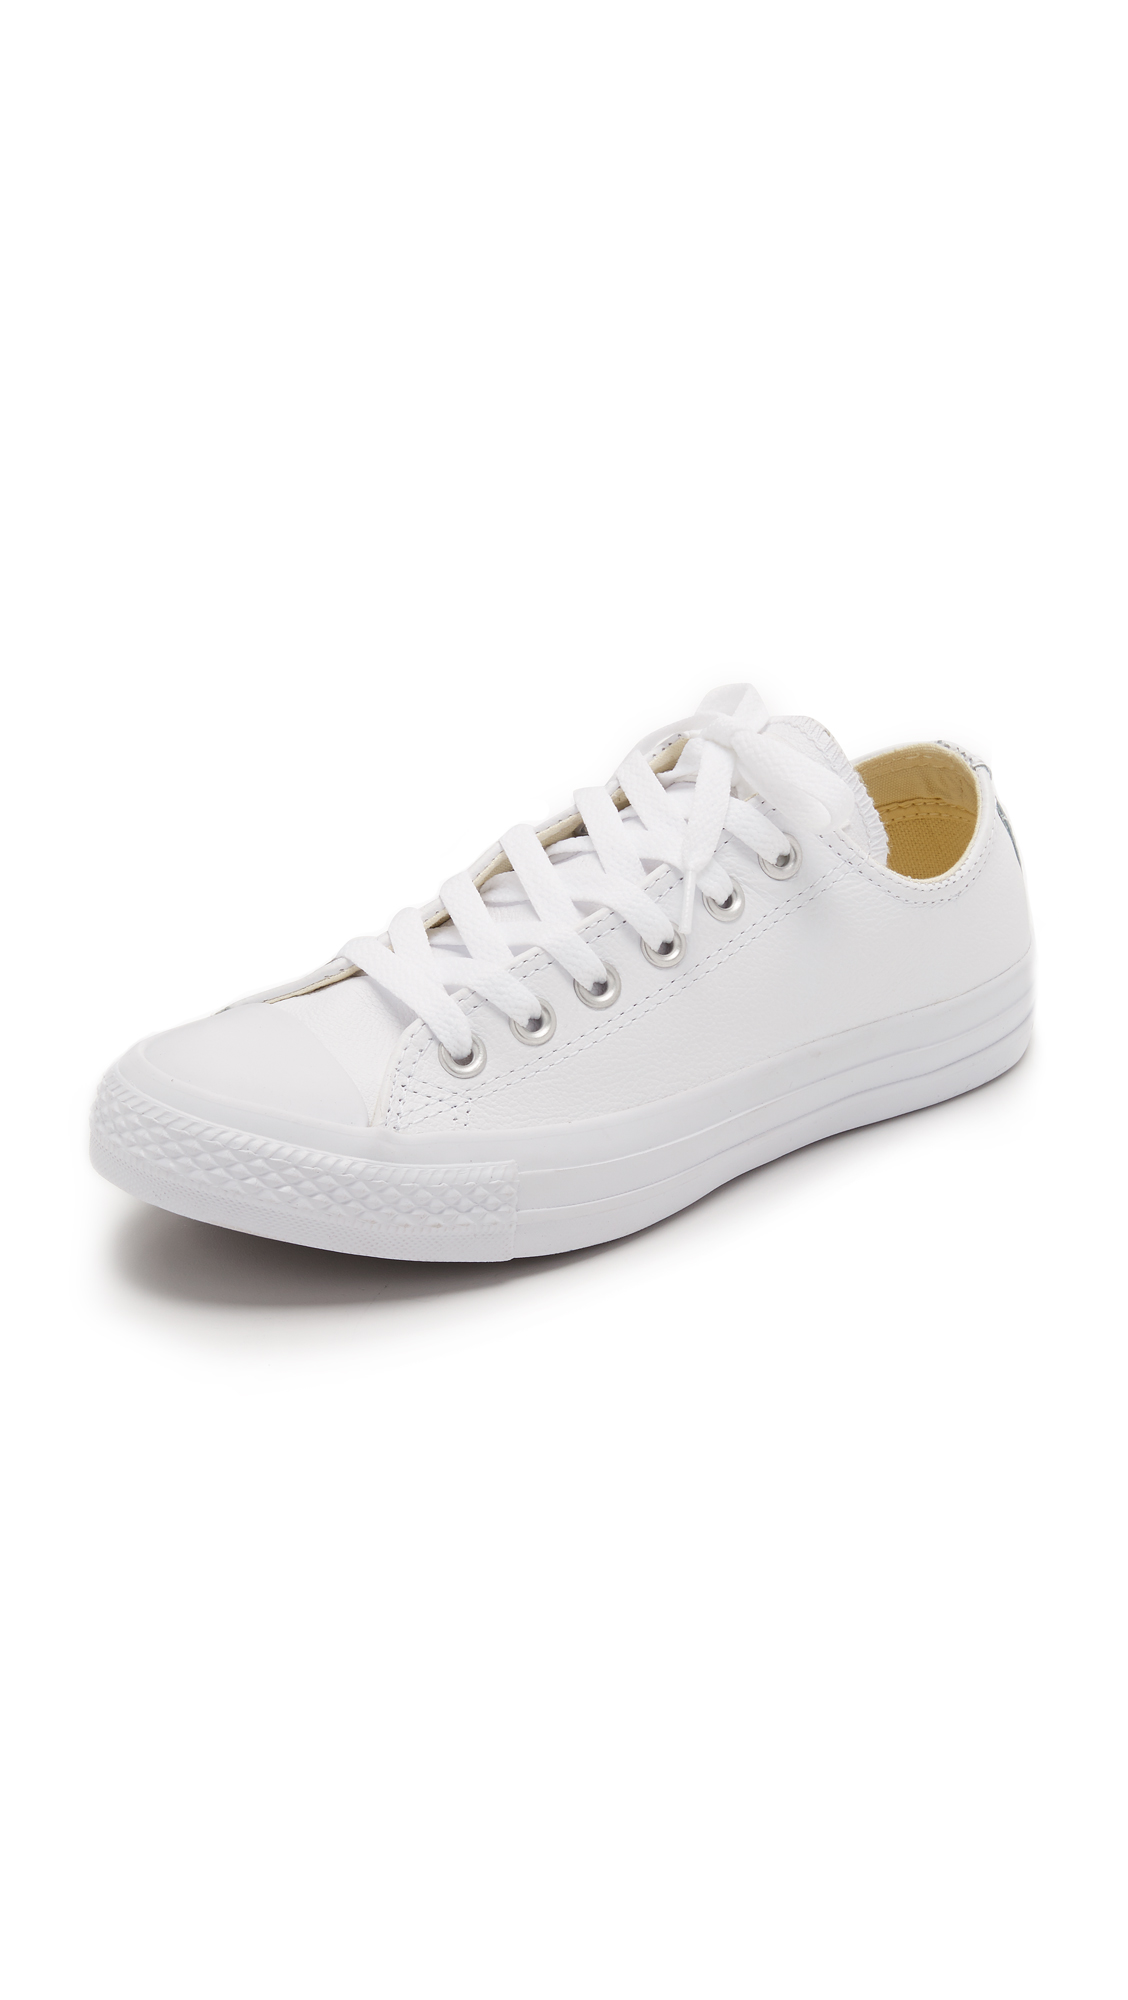 All Star Low-Top Leather Trainers in White Monochrome